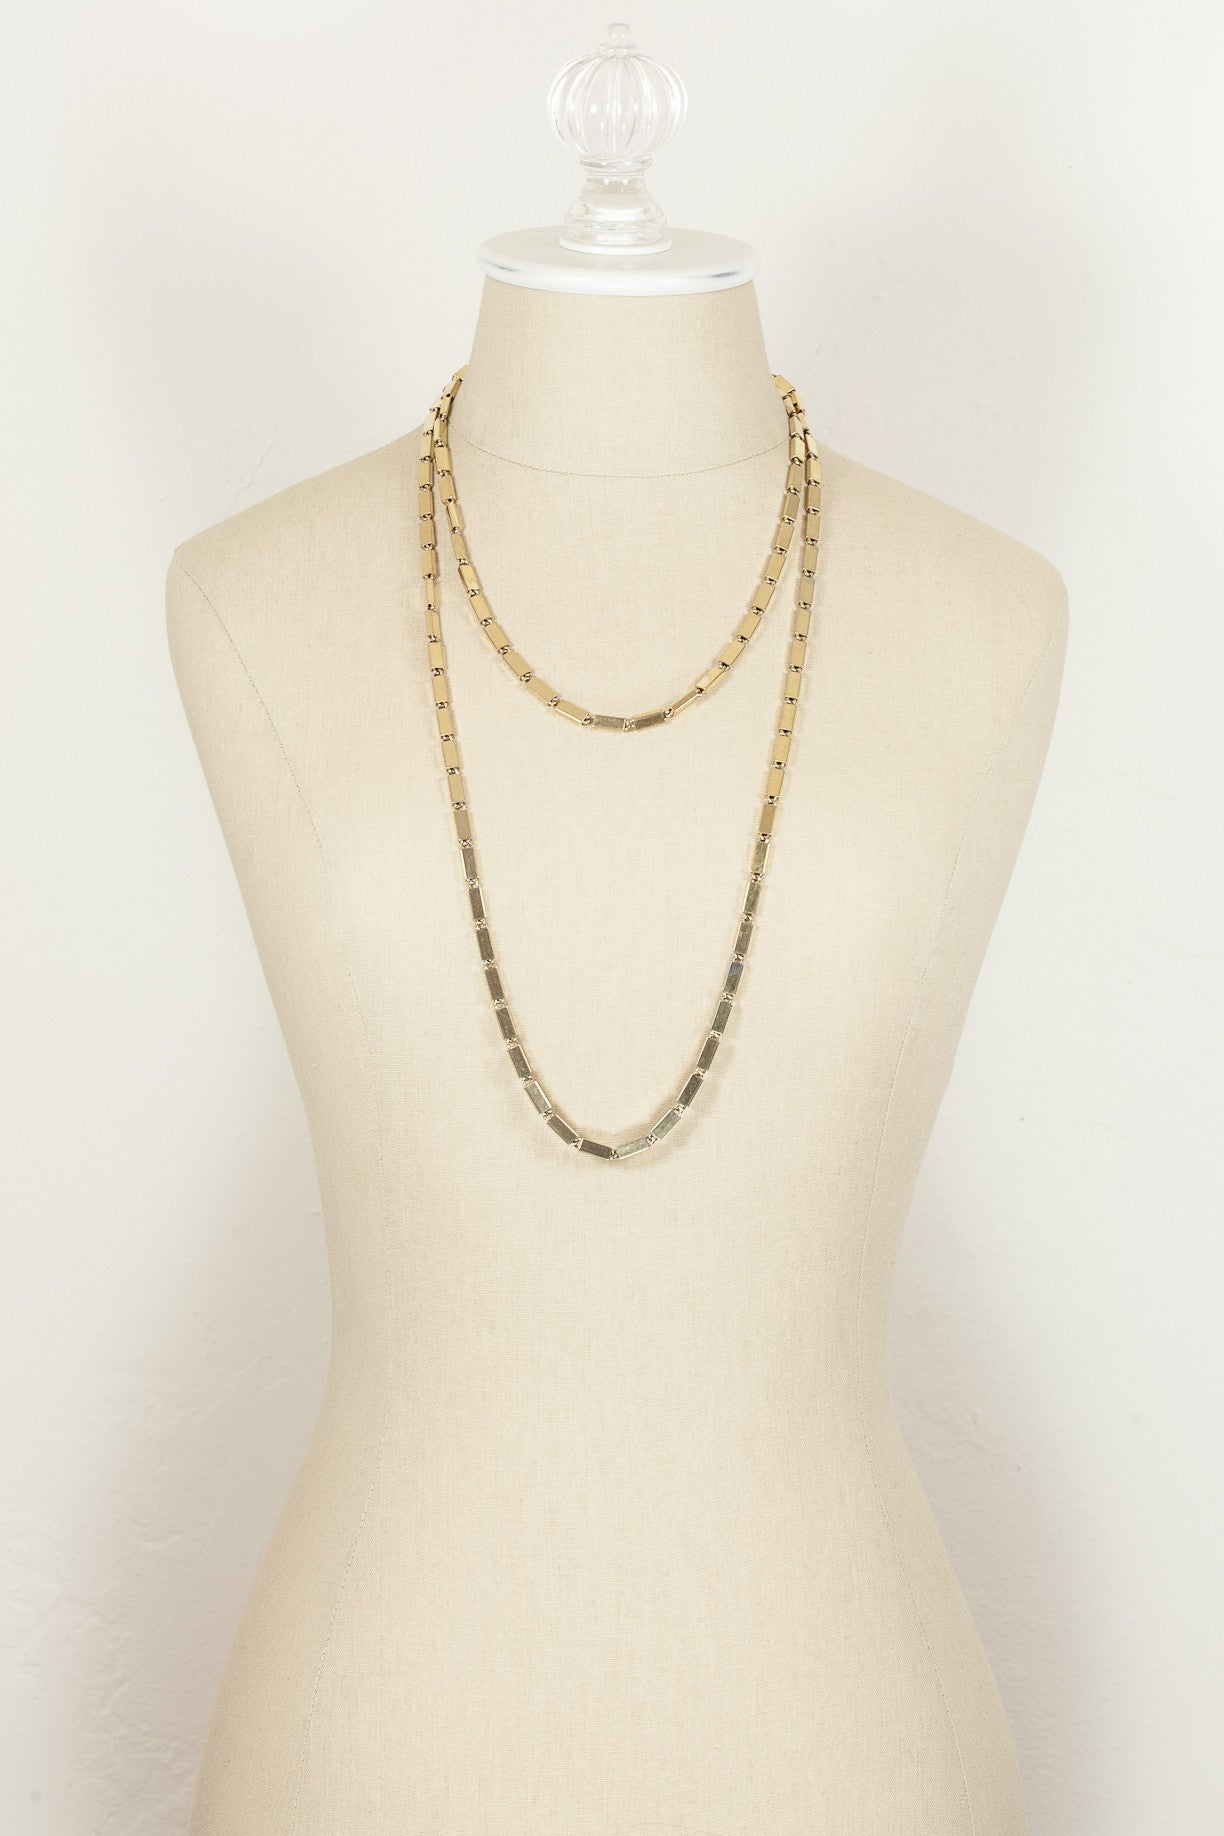 Vintage Extra Long Monet Chain